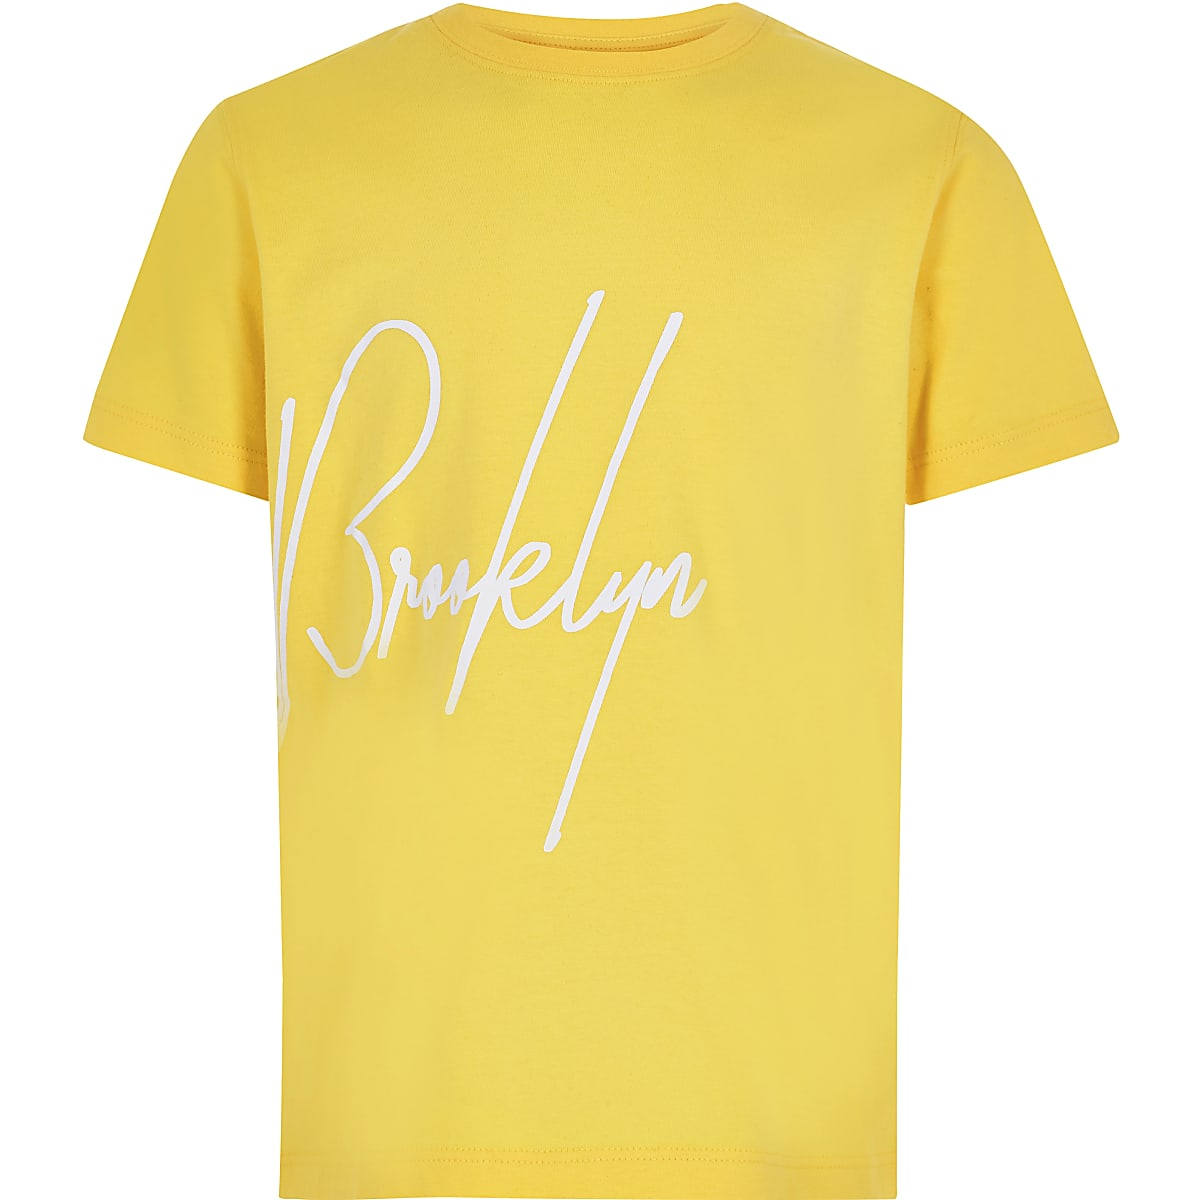 T-shirt jaune « Brooklyn » garçon